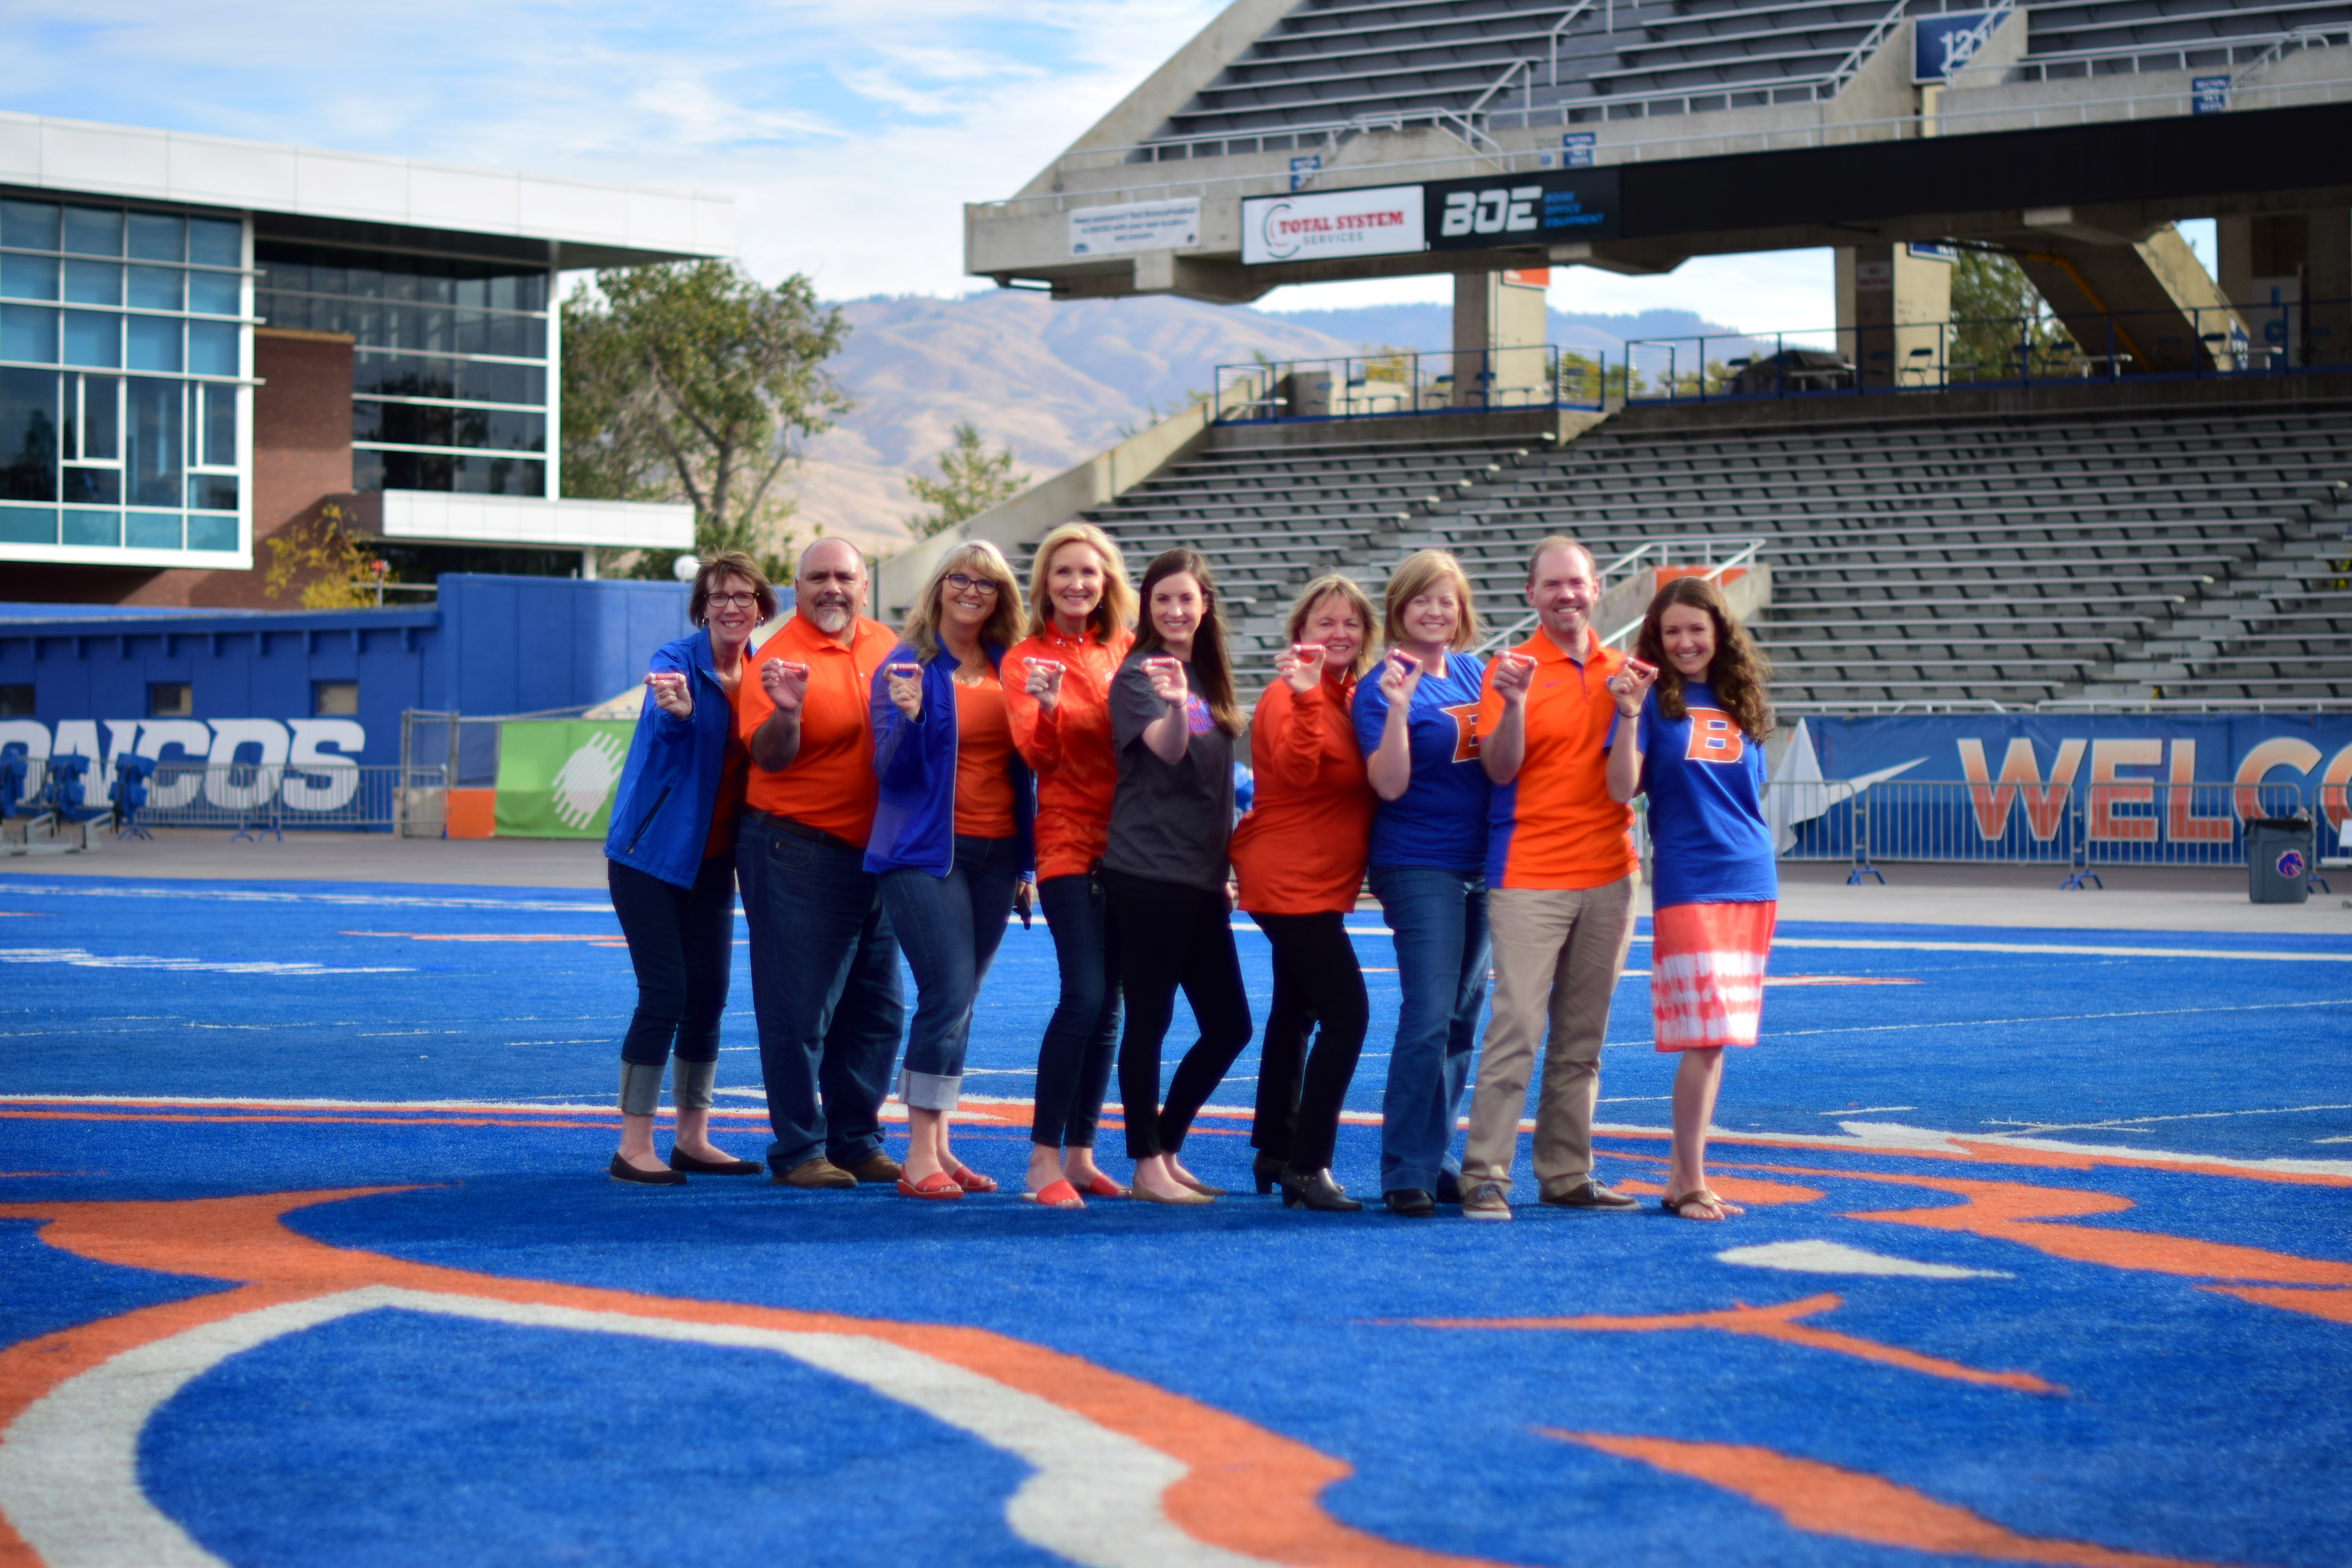 Some of the Career Center staff posing on the blue turf